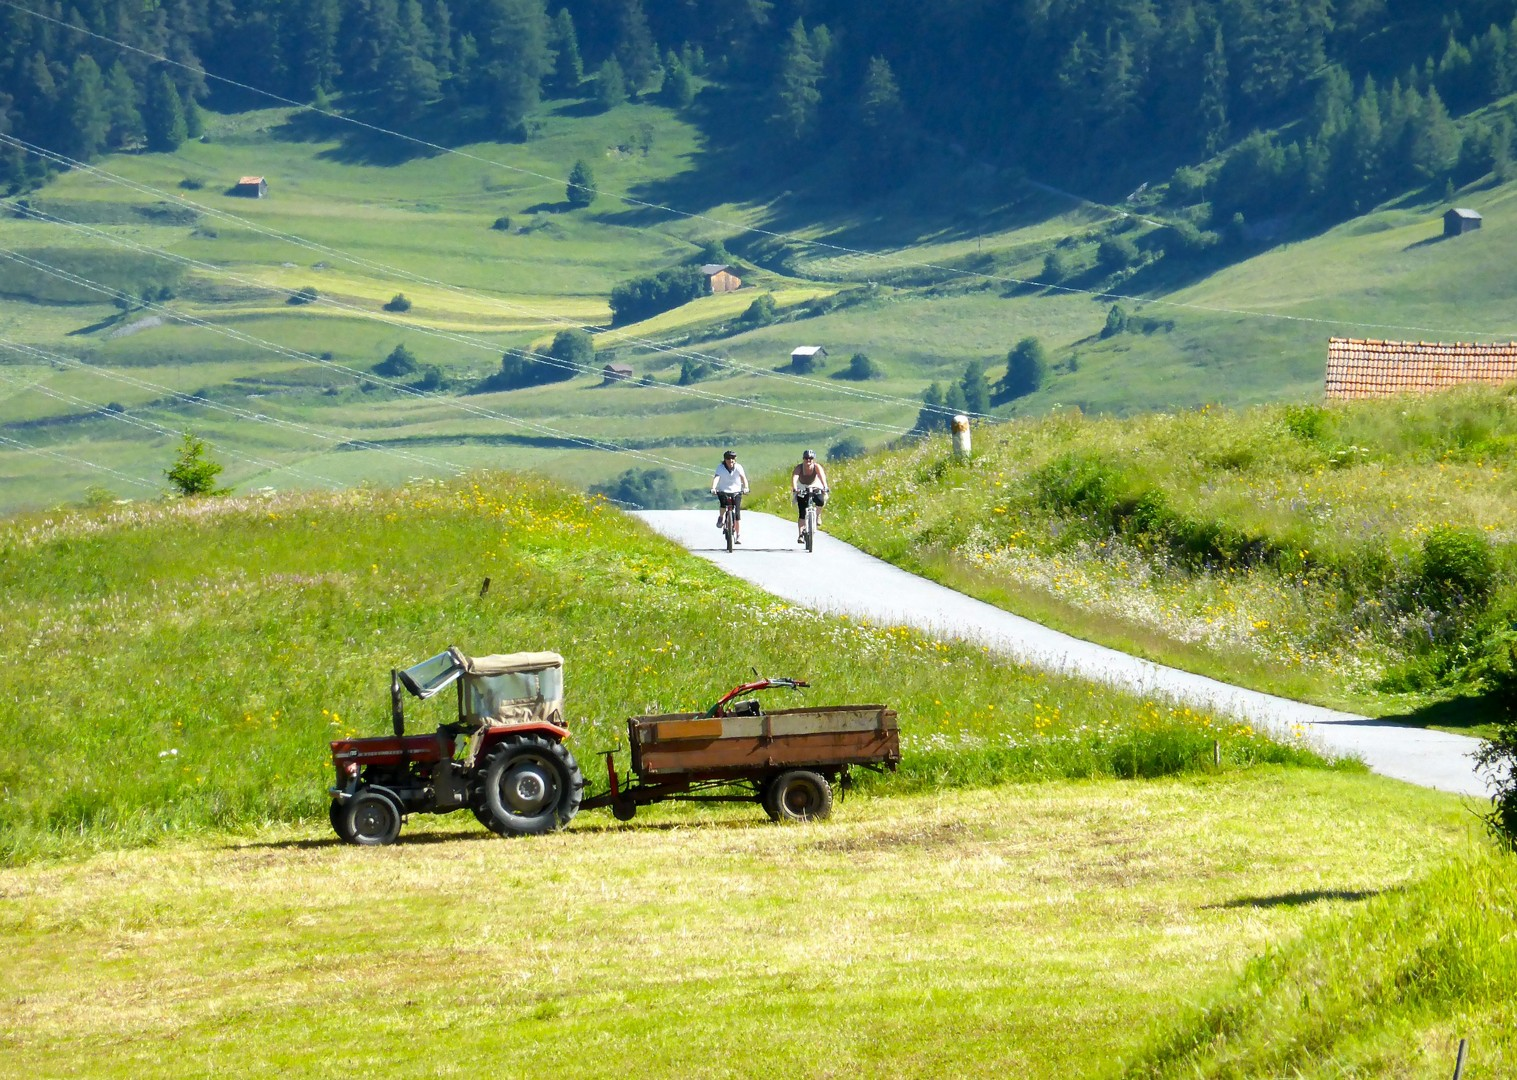 family-cycling-holiday-austria-austrian-lakes.JPG - Austria - Salzburg's Lake District - Self-Guided Family Cycling Holiday - Family Cycling